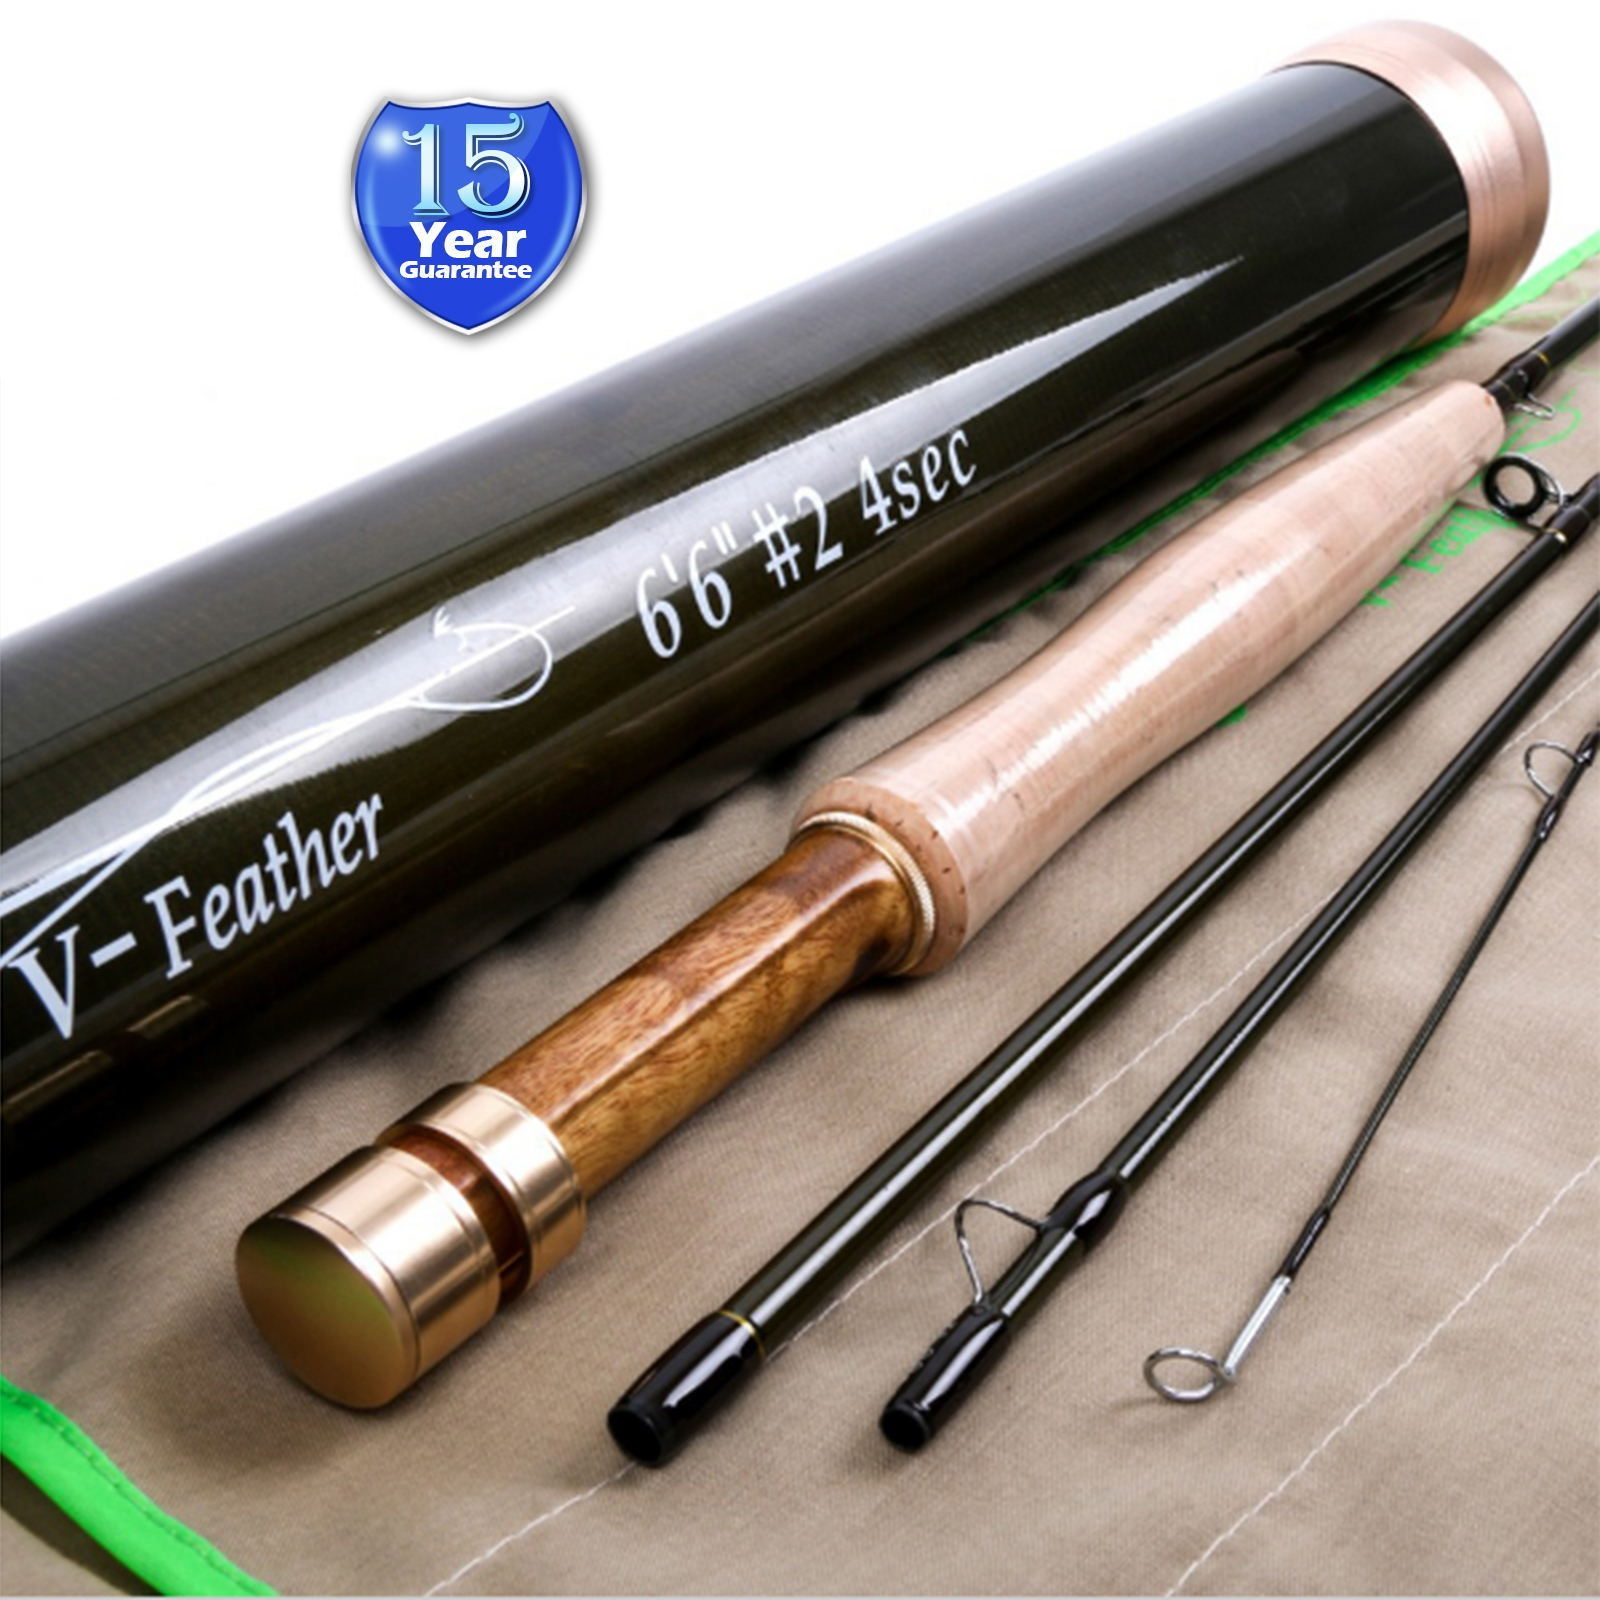 Crystal Black Rod Tube 3/4Pieces IM10 & Carbon Fiber Rod Tube <Lifetime Warranty>